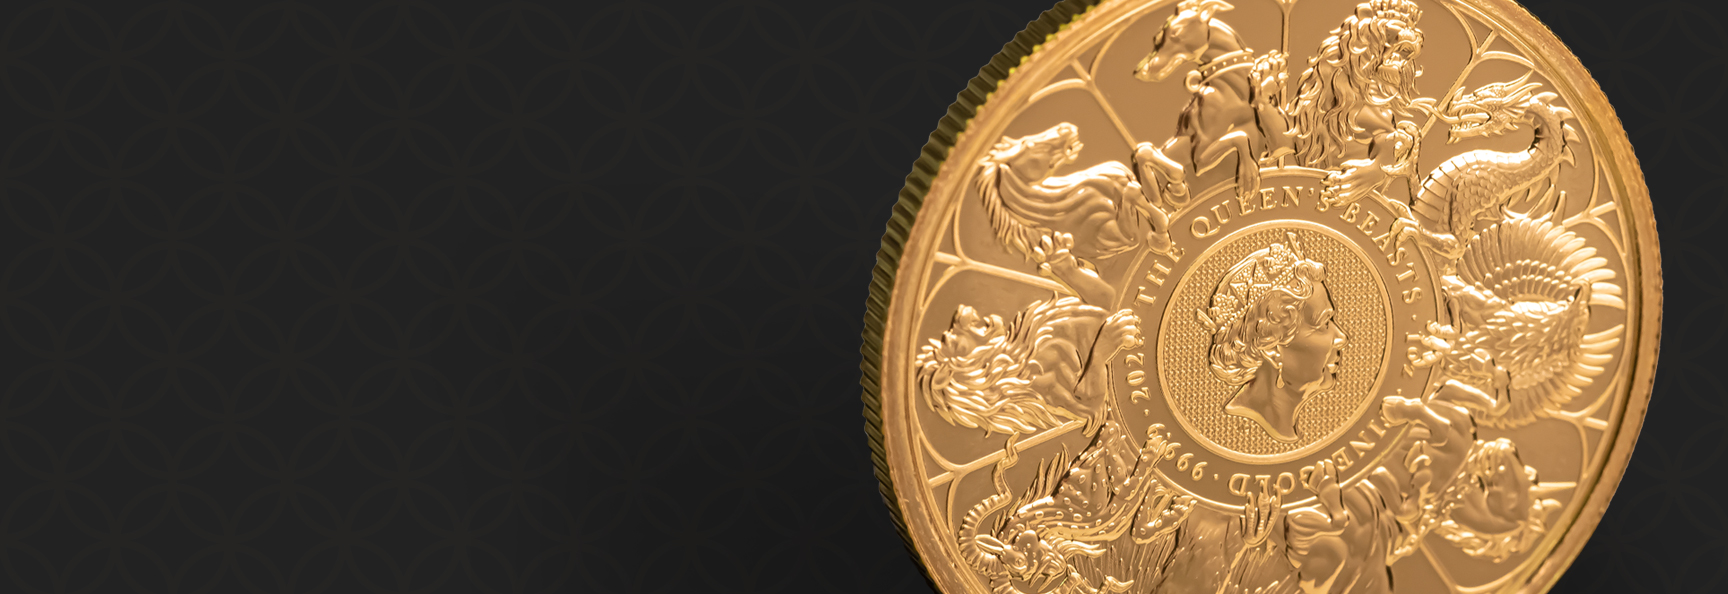 United Kingdom Gold  Queen's Beast  Completer 2021  - 1 oz